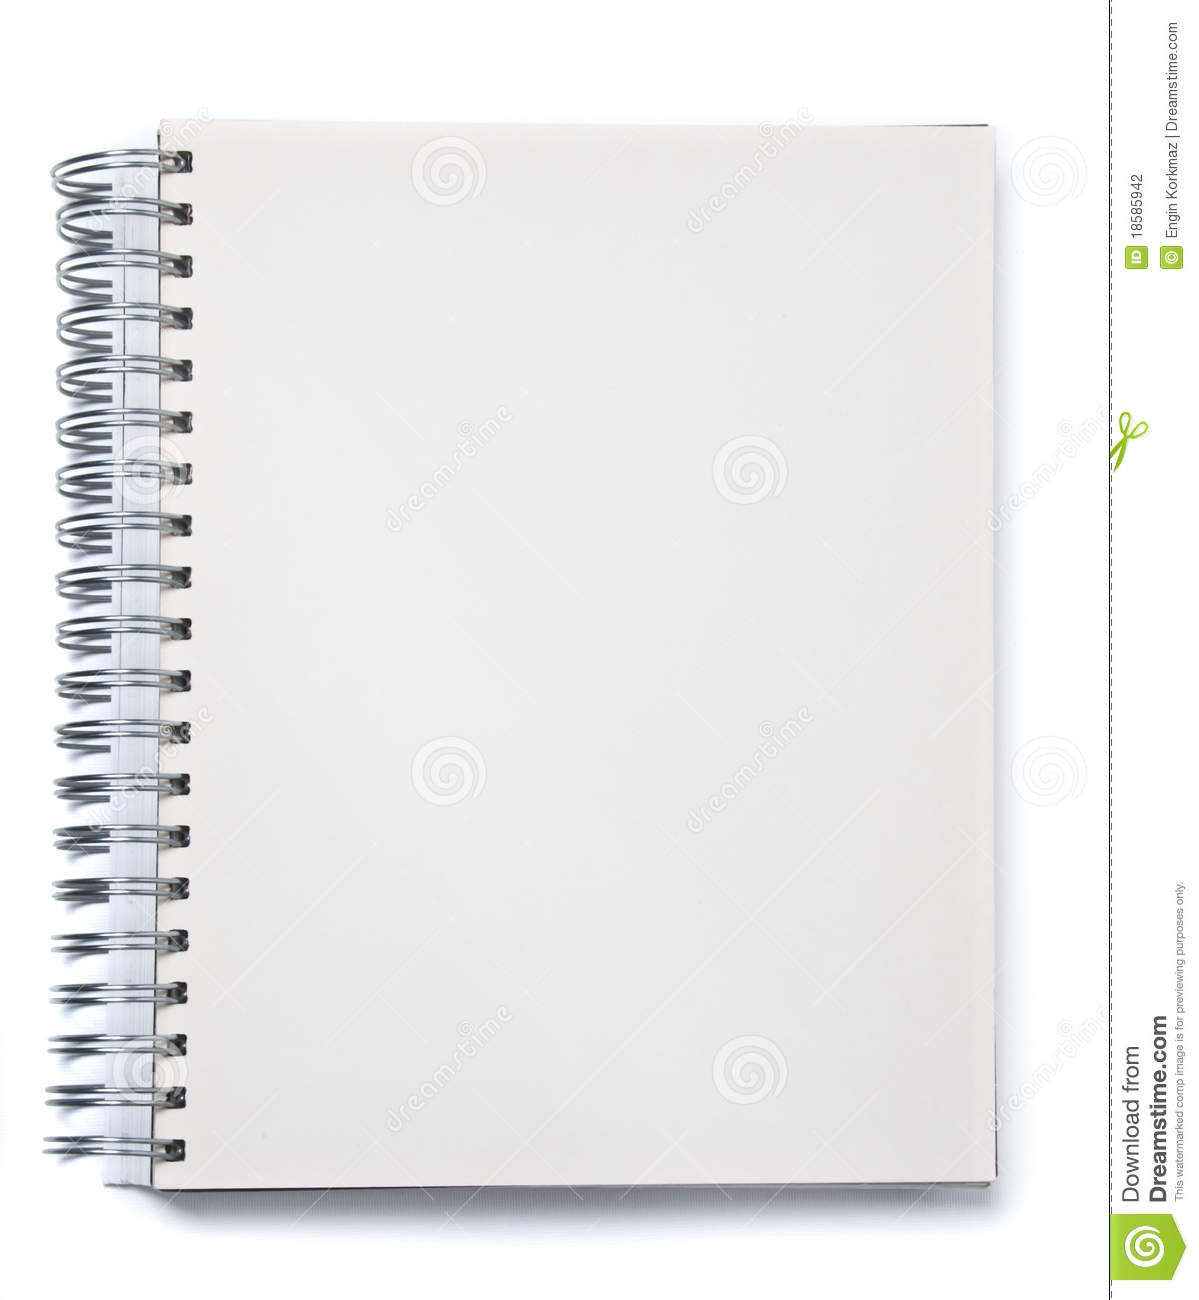 Blank Spiral Notebook Stock Photography - Image: 18585942